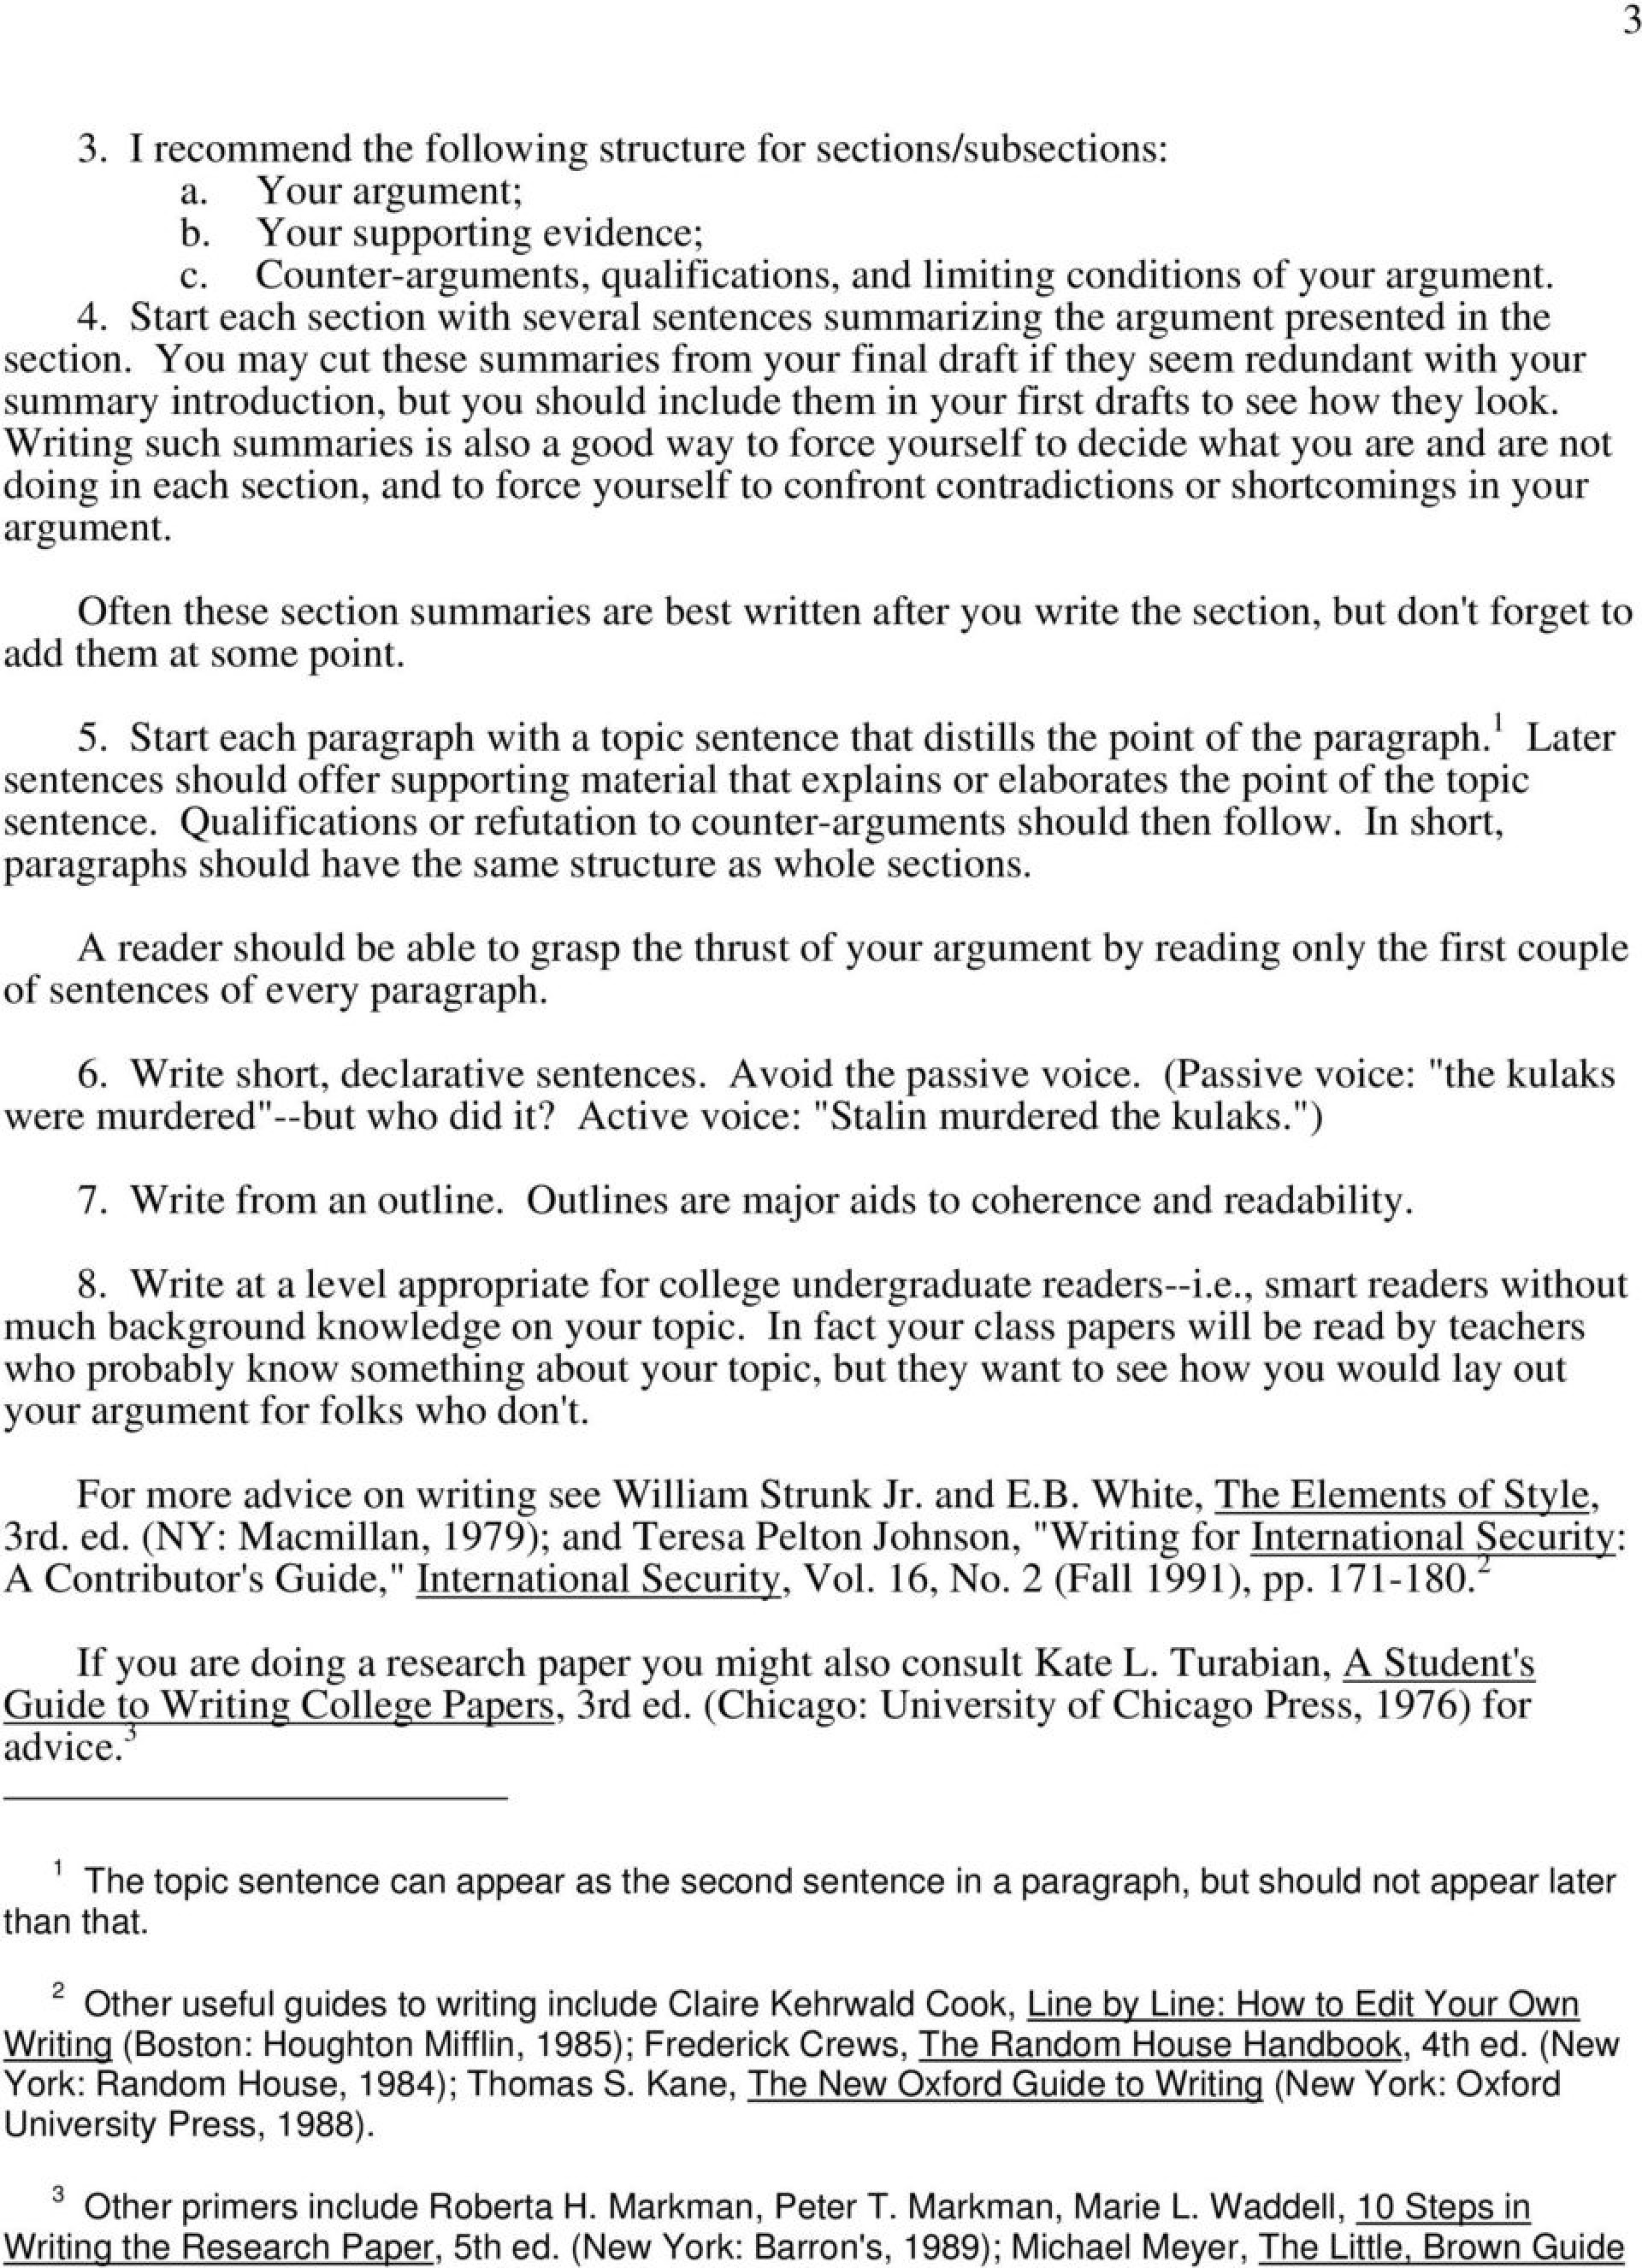 002 Page 3 Research Paper Steps In Writing The Markman Surprising 10 Pdf 1920